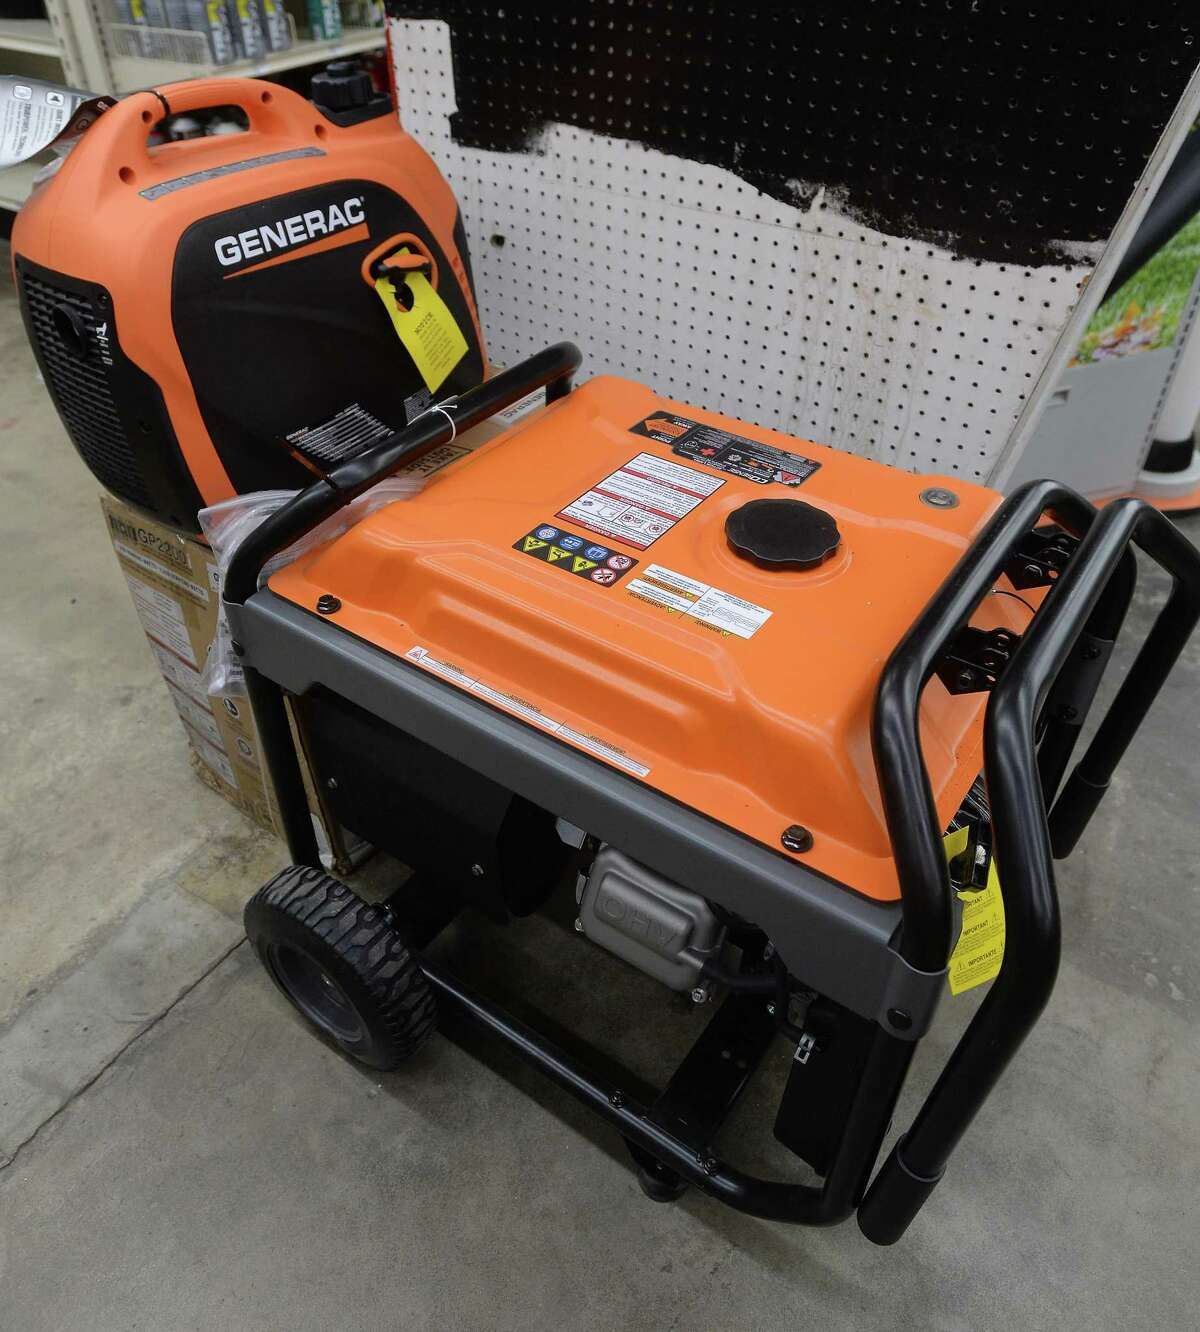 Portable generators up to $3,000 will be tax free during the Texas sales tax holiday period from 12:01 a.m. Saturday, April 24, through midnight Monday, April 26.